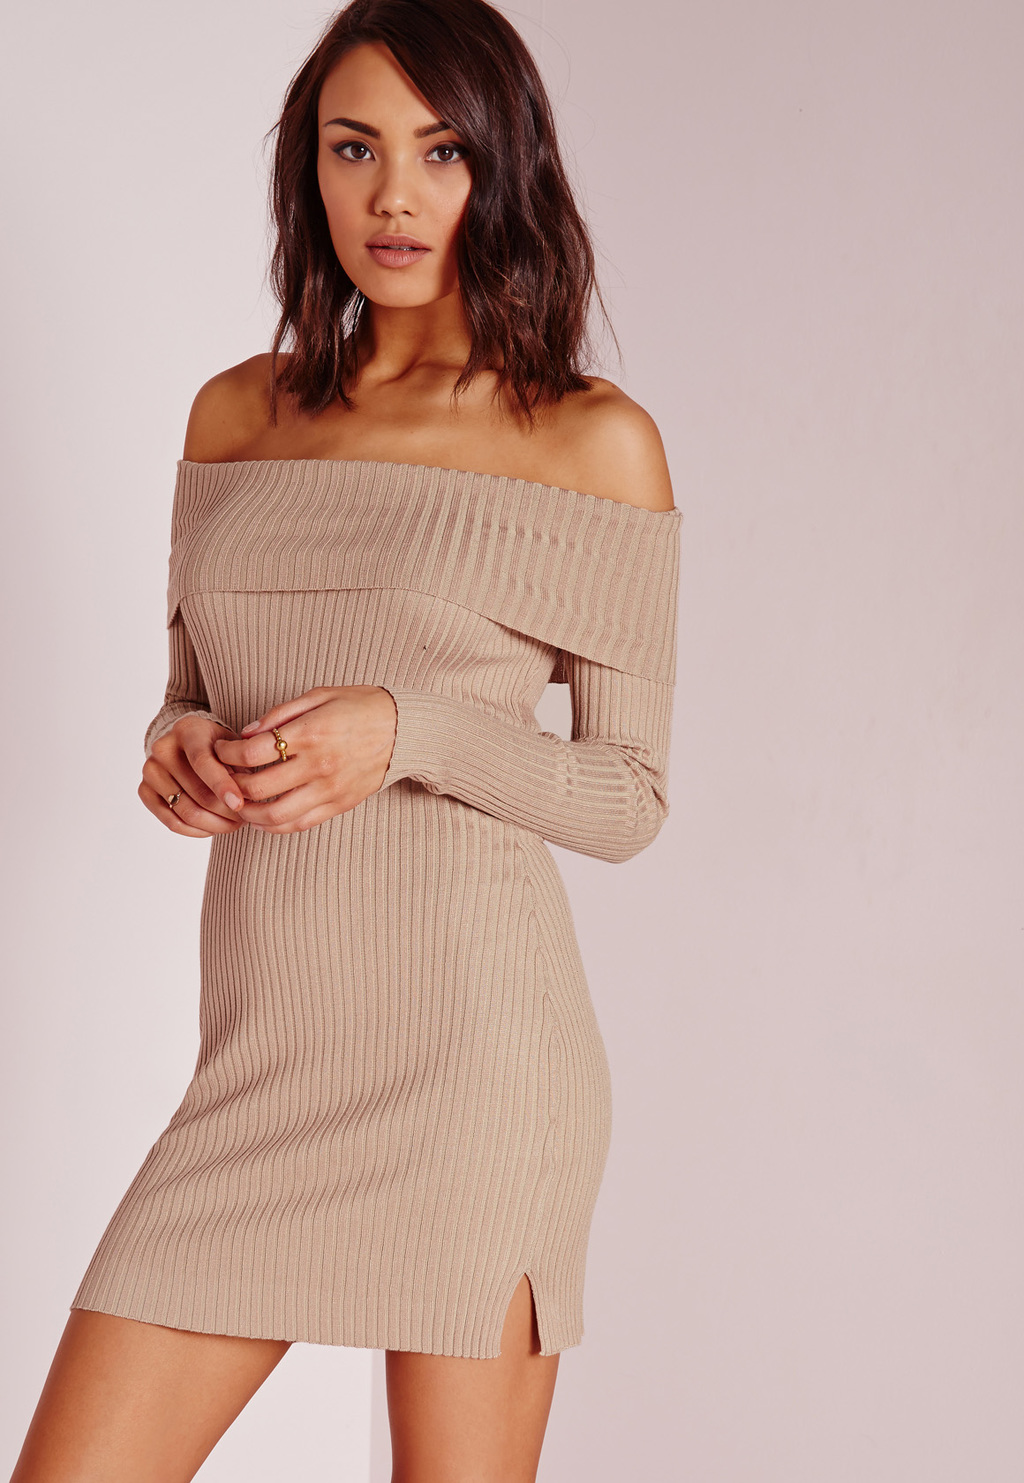 Bardot Mini Jumper Dress Camel, Beige - style: jumper dress; length: mid thigh; neckline: off the shoulder; pattern: plain; predominant colour: camel; secondary colour: camel; occasions: casual, creative work; fit: body skimming; fibres: viscose/rayon - 100%; sleeve length: long sleeve; sleeve style: standard; texture group: knits/crochet; pattern type: fabric; season: s/s 2016; wardrobe: highlight